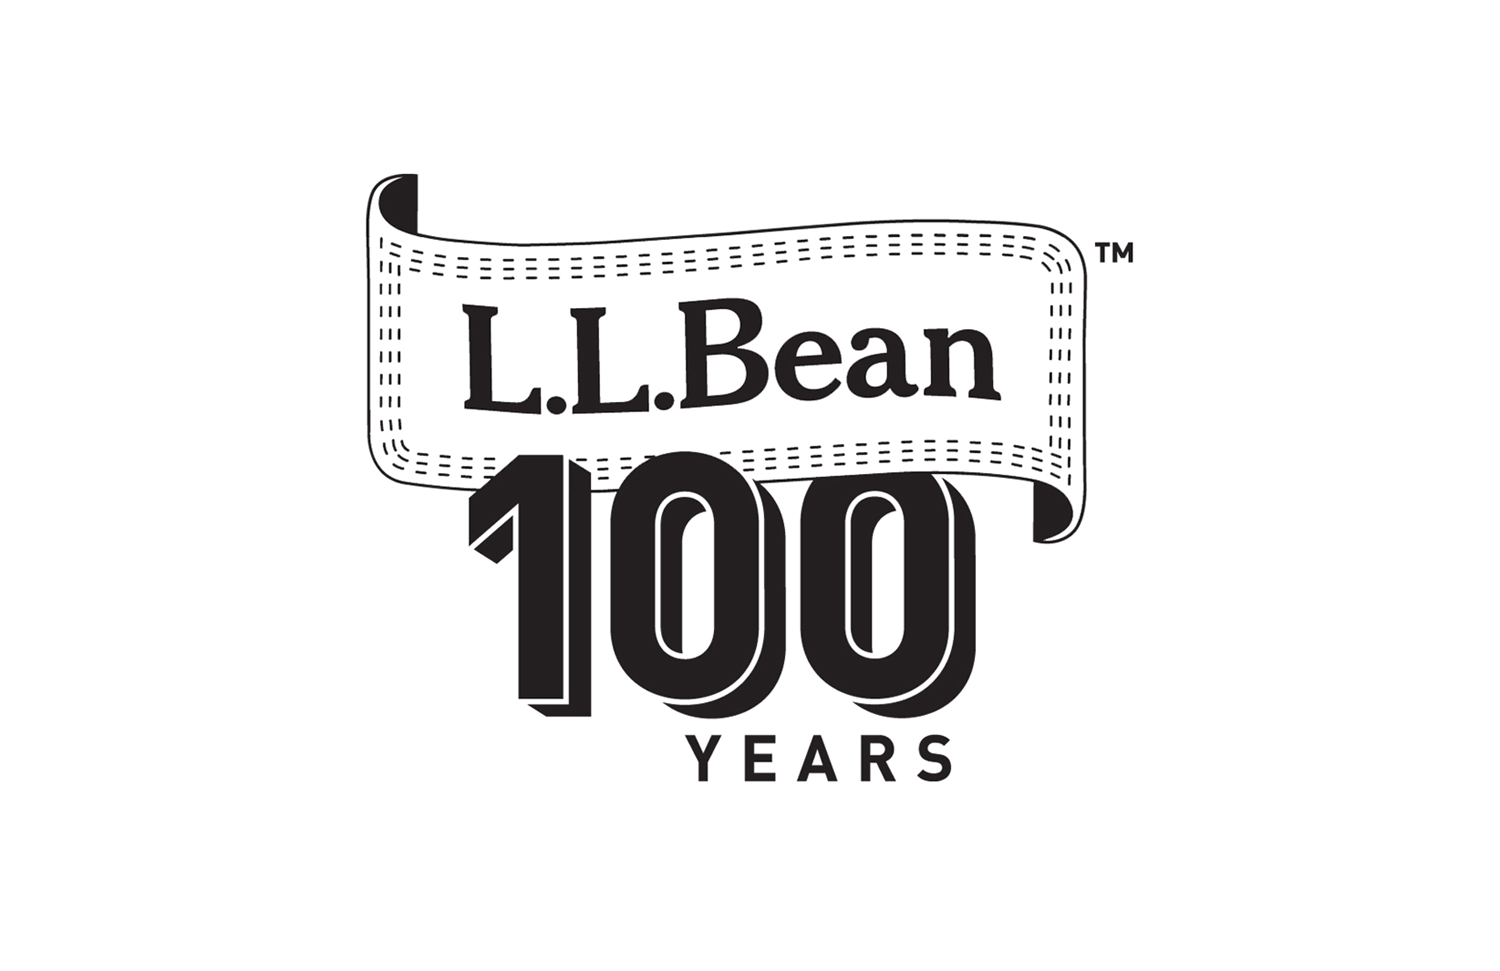 L.L.Bean 100th Anniversary Identity Package